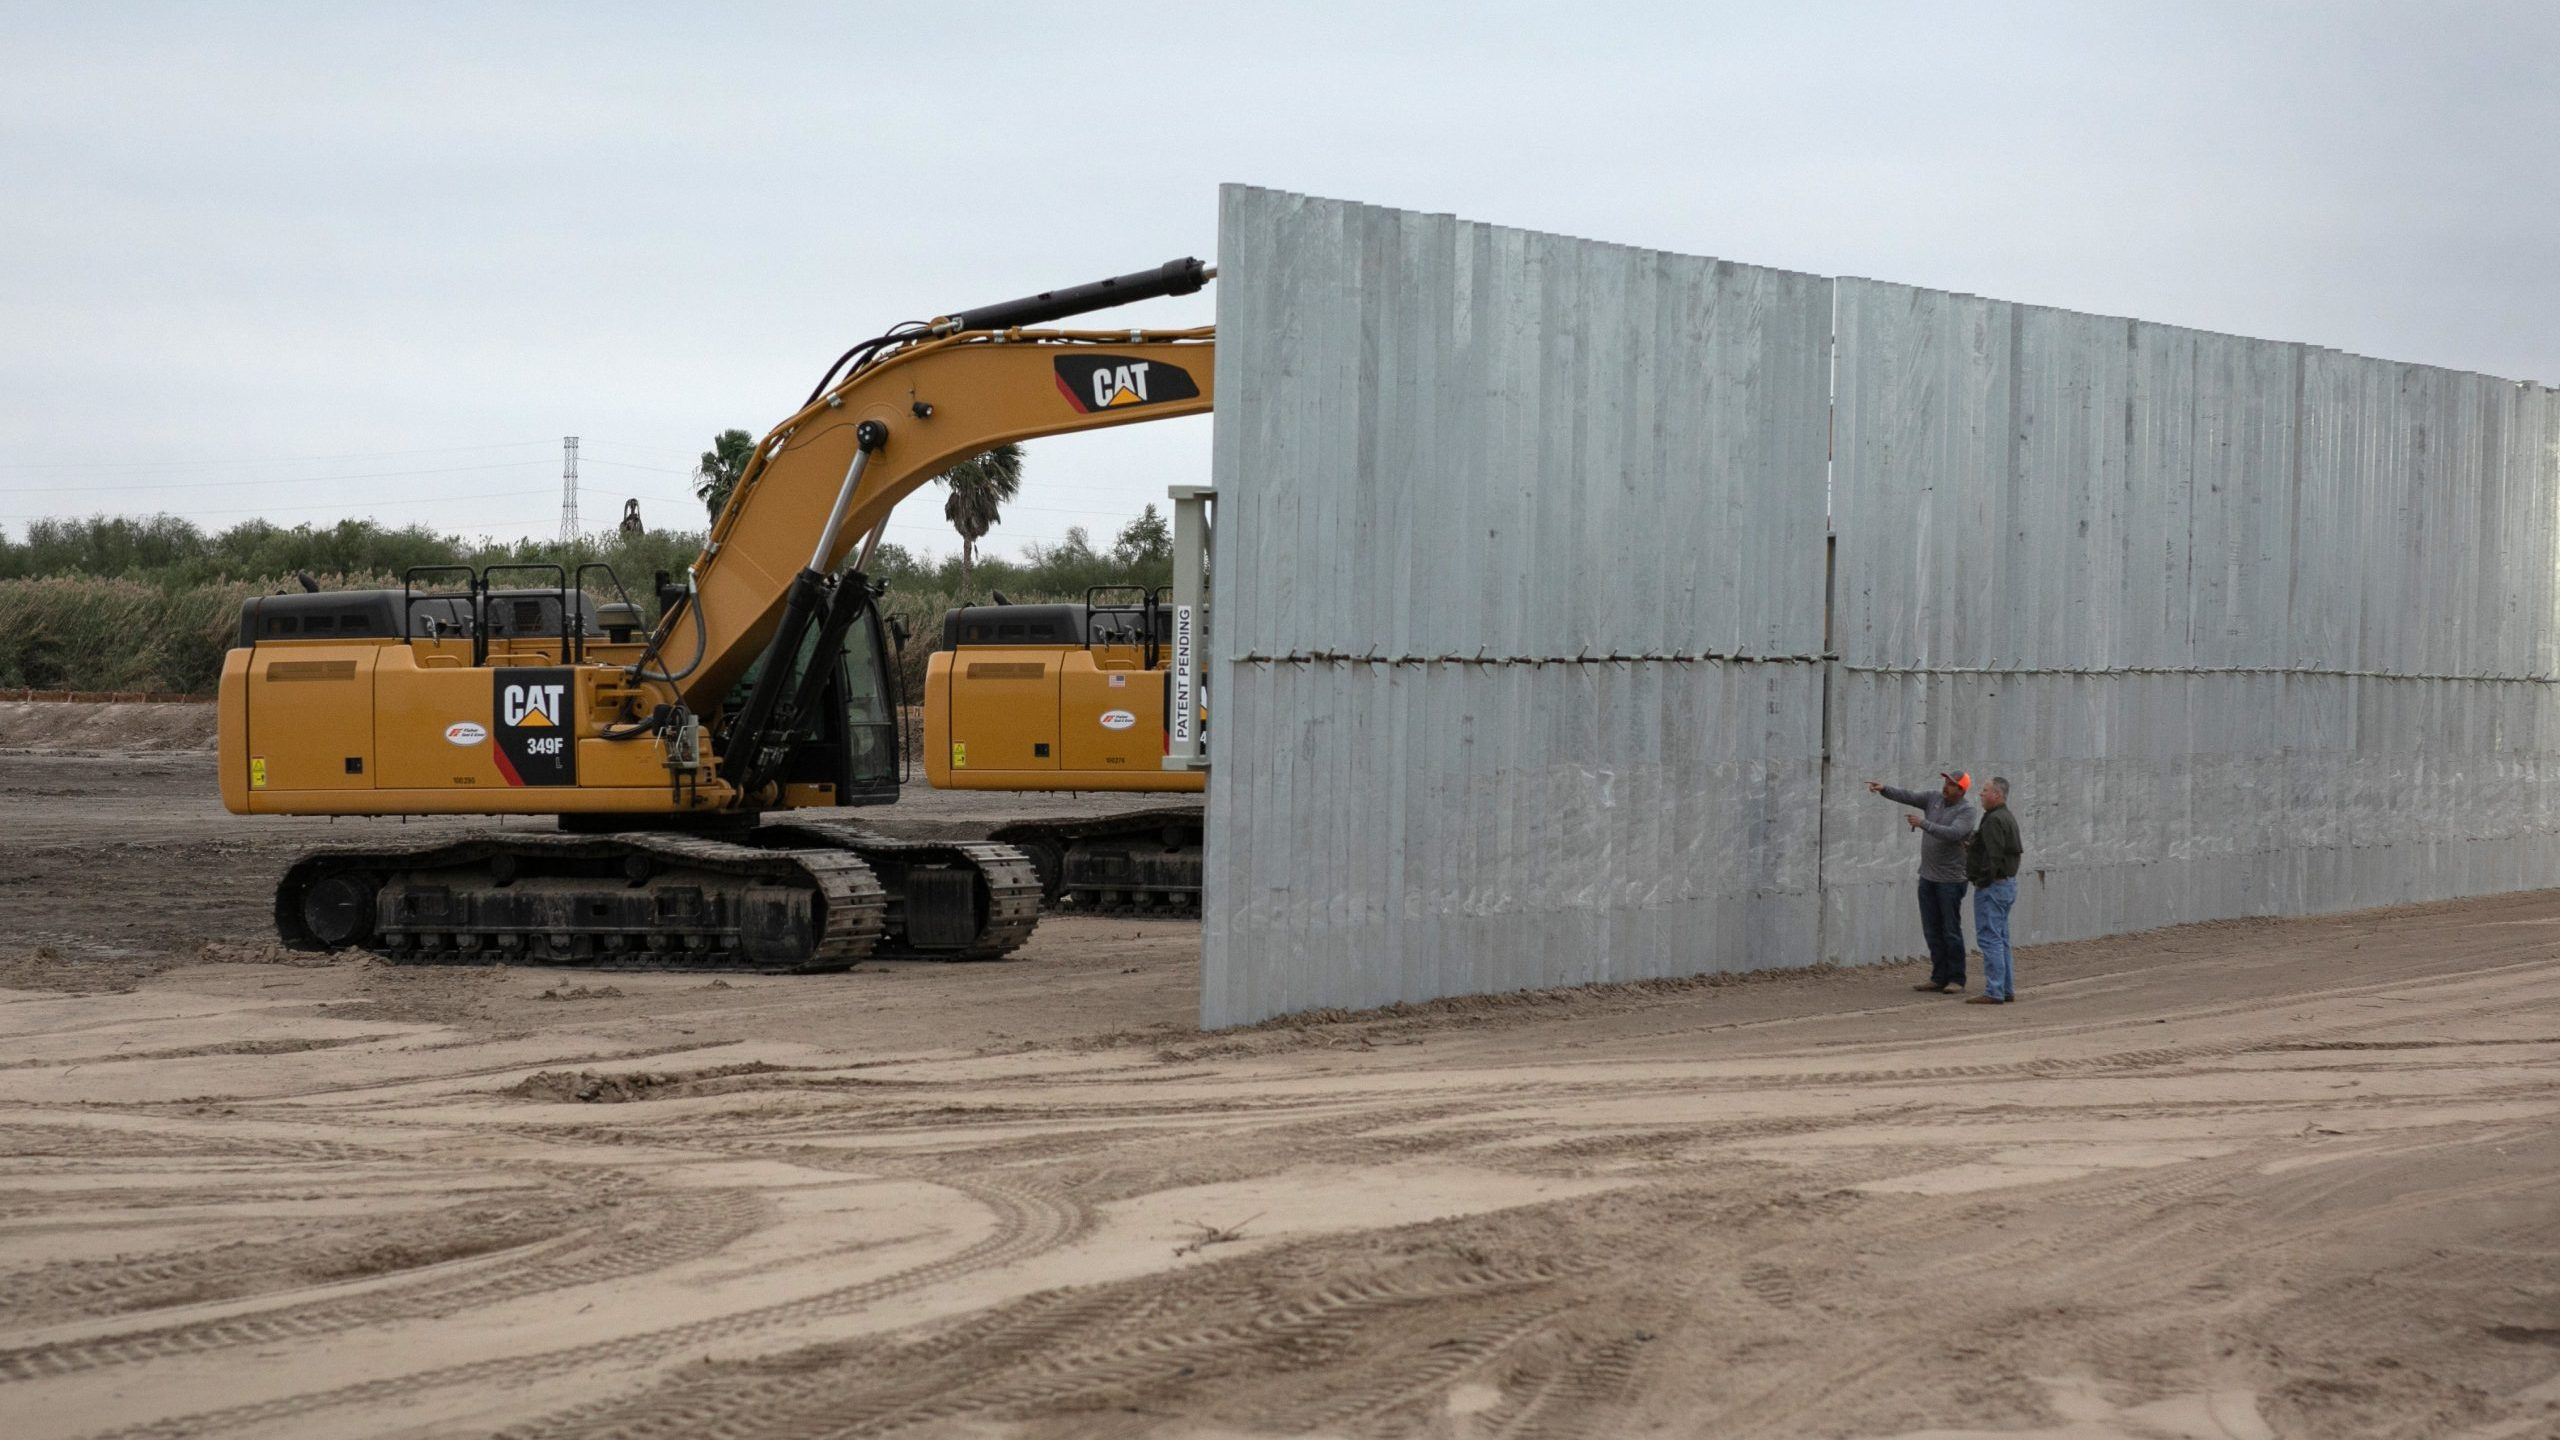 A construction crew works on a section of privately funded border wall on Dec. 11, 2019, near Mission, Texas. (Credit: John Moore / Getty Images)